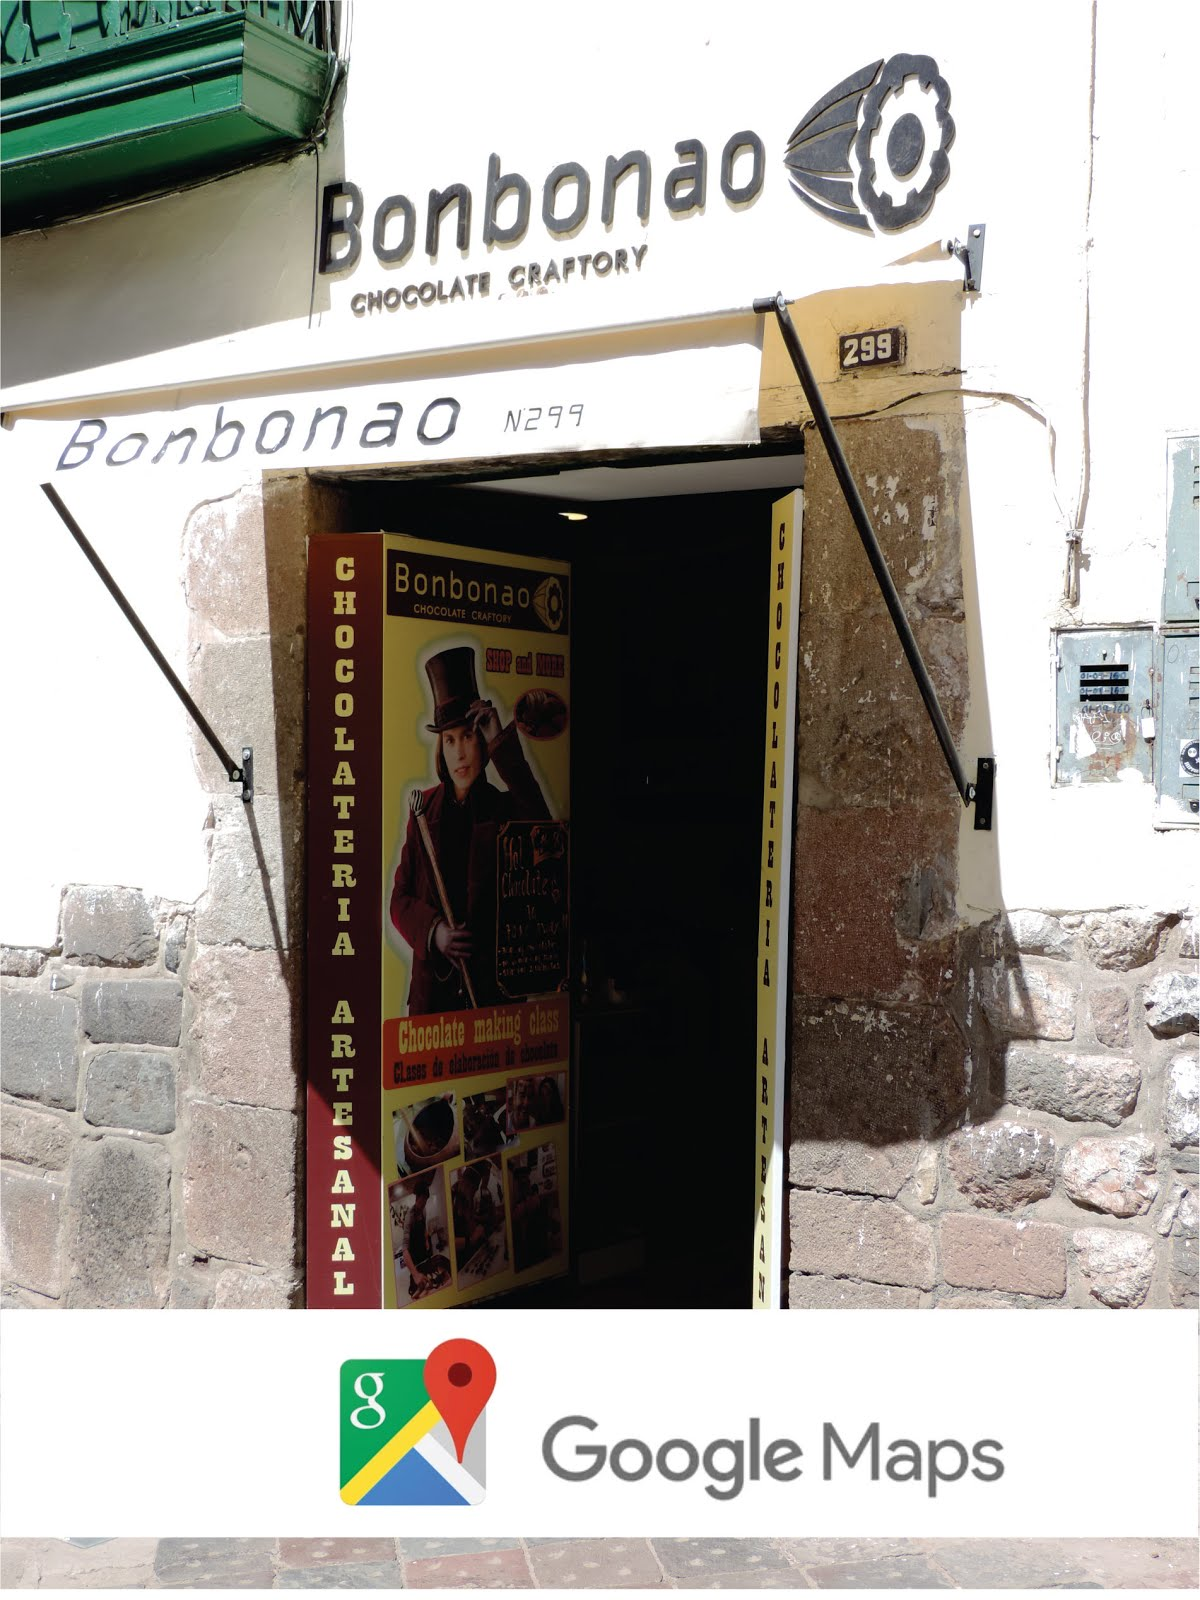 Bonbonao Location